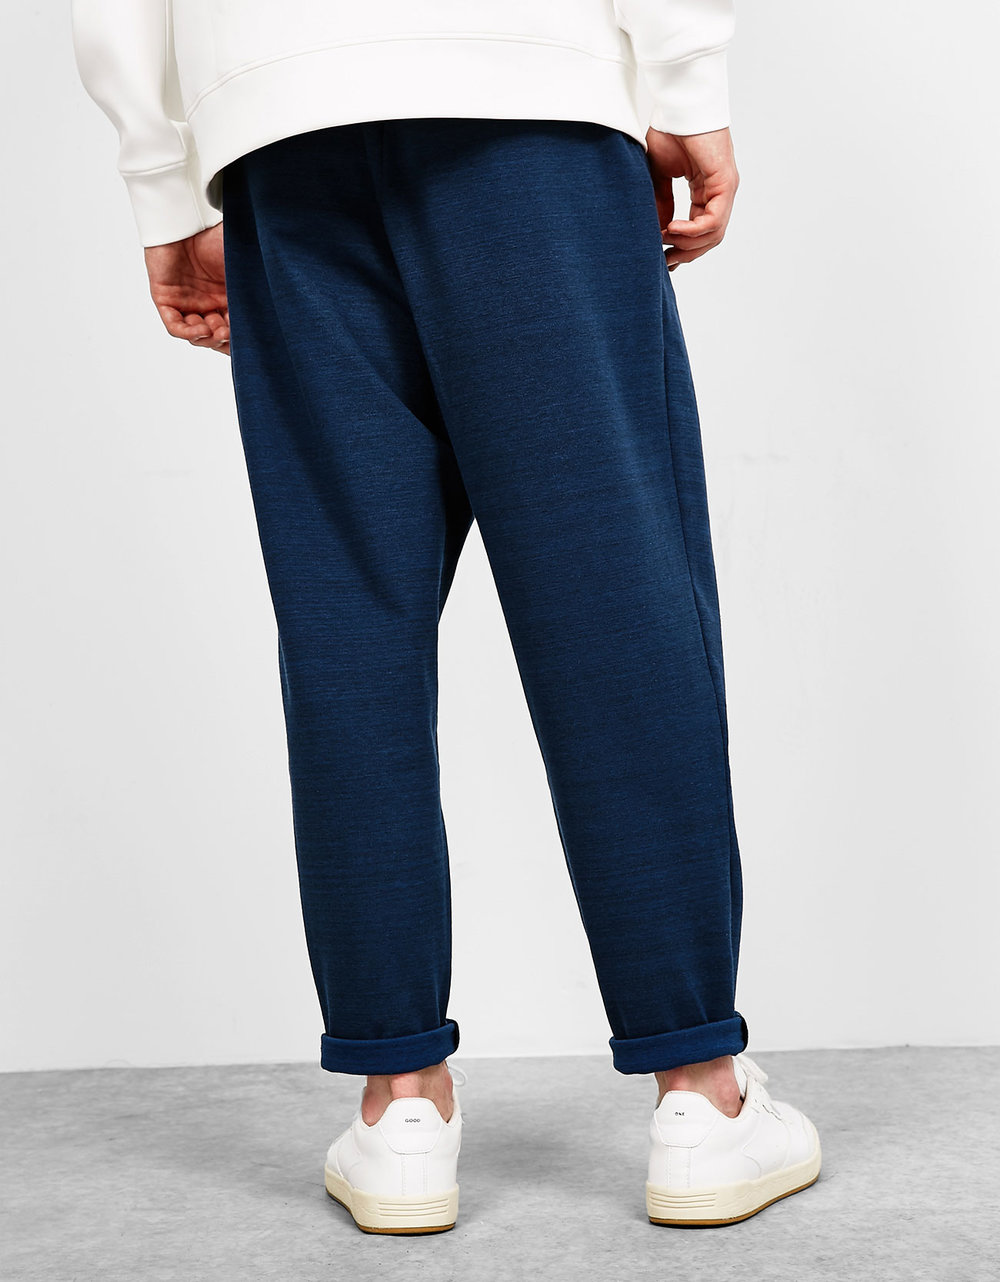 Plush trousers, £29.99 (bershka.com)